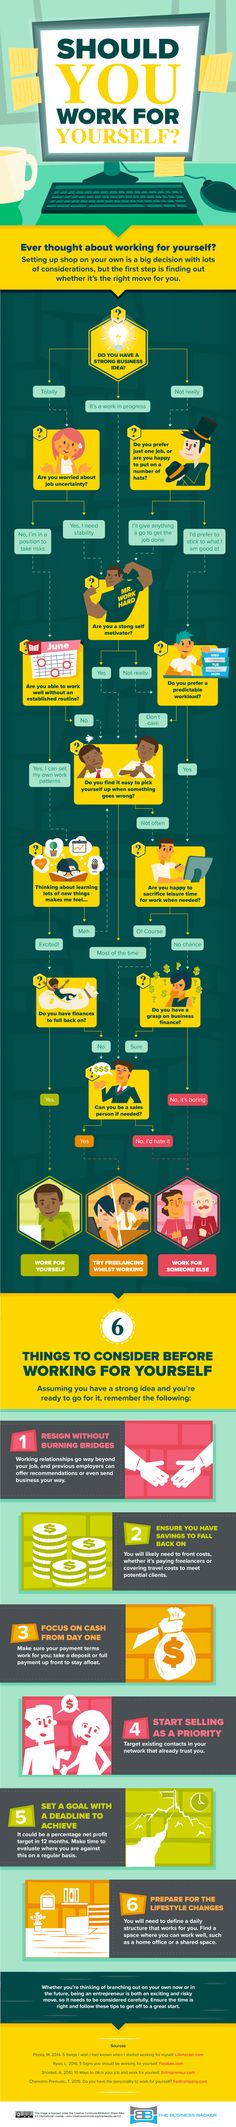 Should You Work for Yourself? #Infographic #SmallBusiness